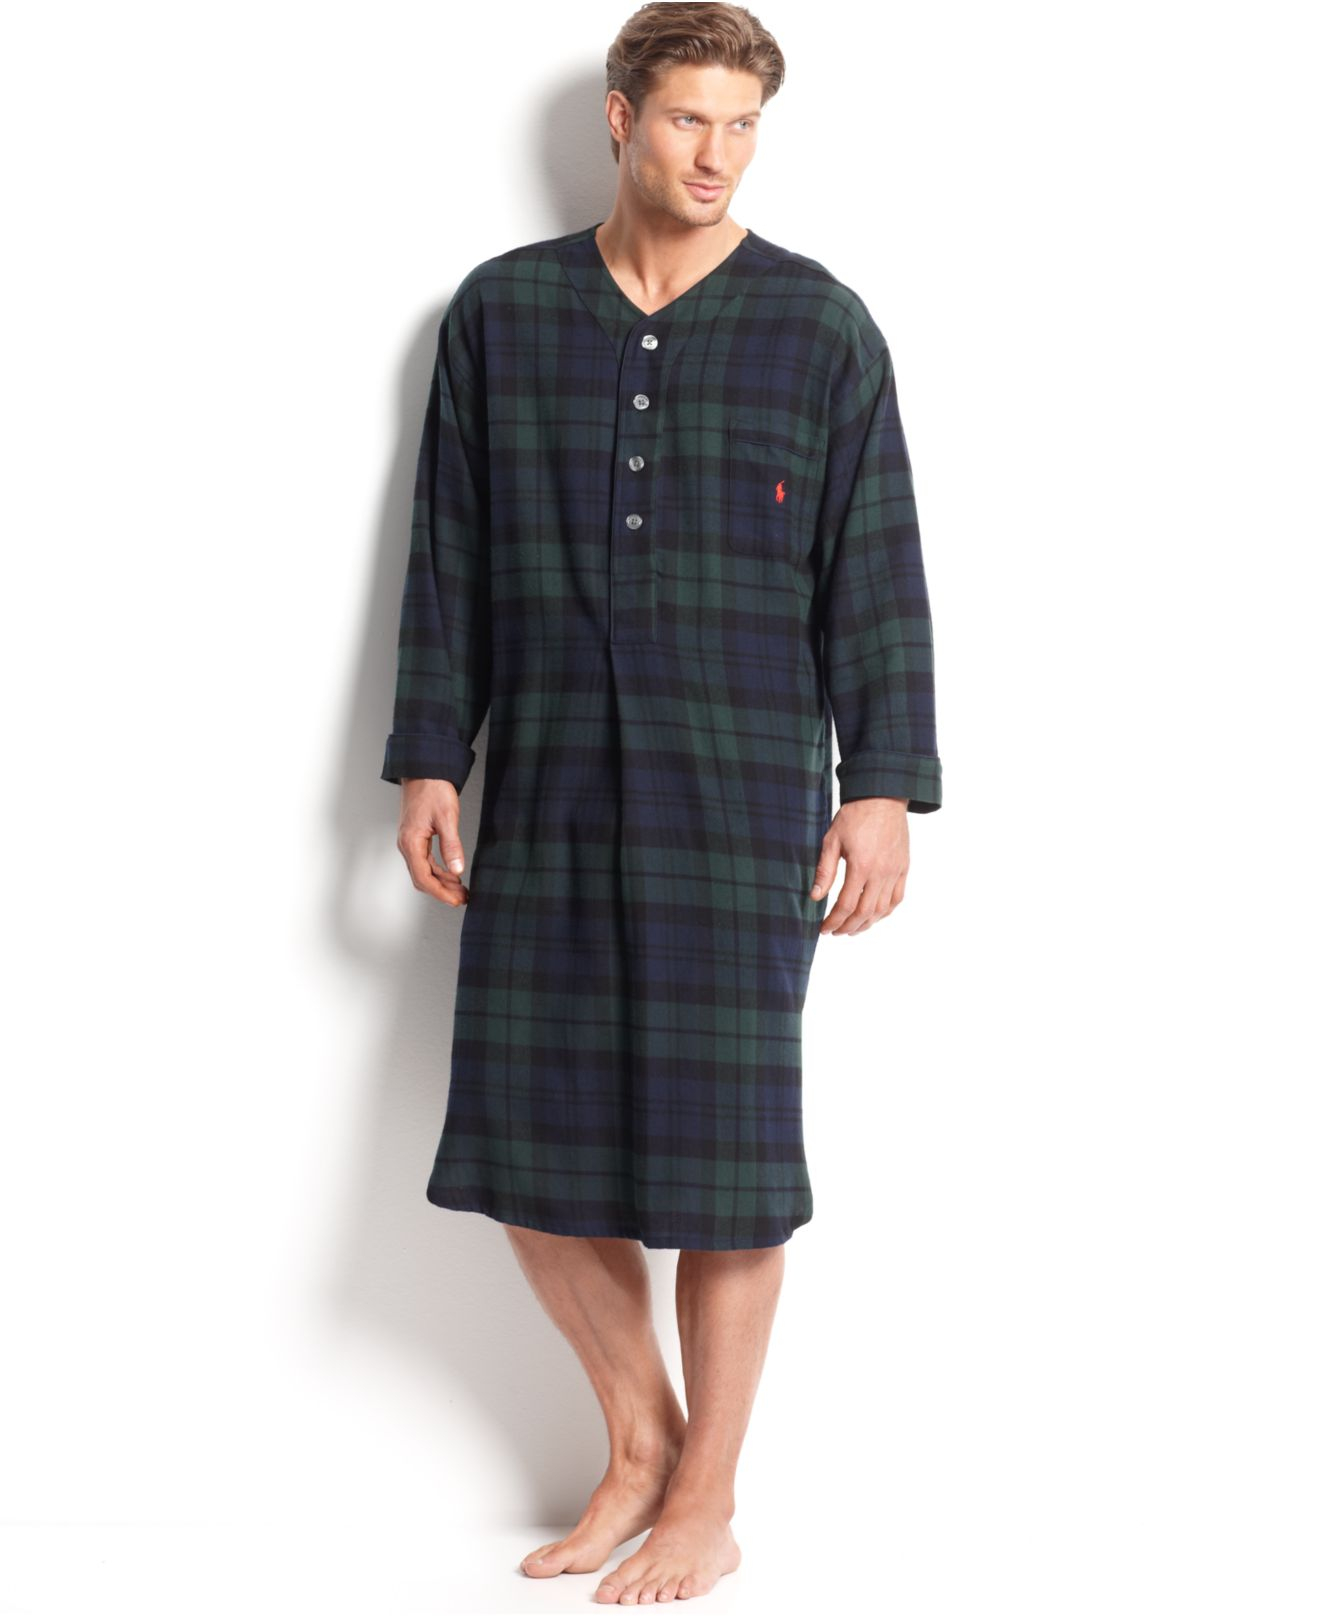 Polo ralph lauren Men's Long-sleeved Plaid Flannel Pajama Shirt in ...